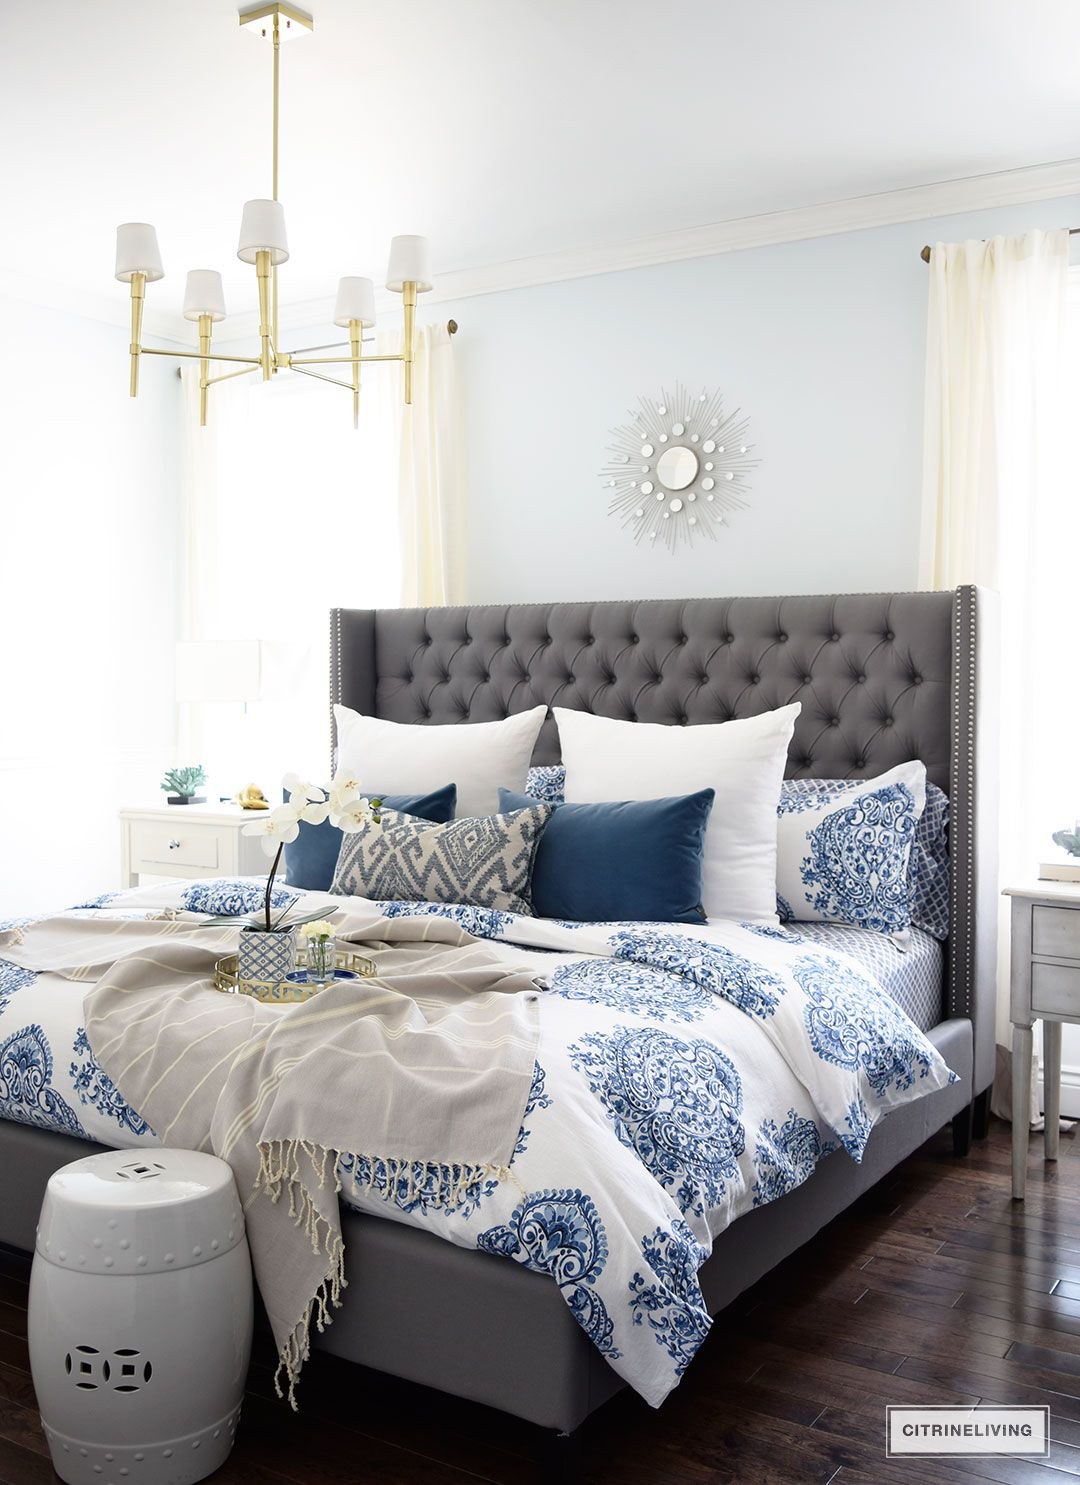 Gorgeous Blue And White Bedroom Featuring Blue And White Bedding Paired  With Global Inspired Textiles, Grey Upholstered Bed And Brass Accents And  Lighting ...